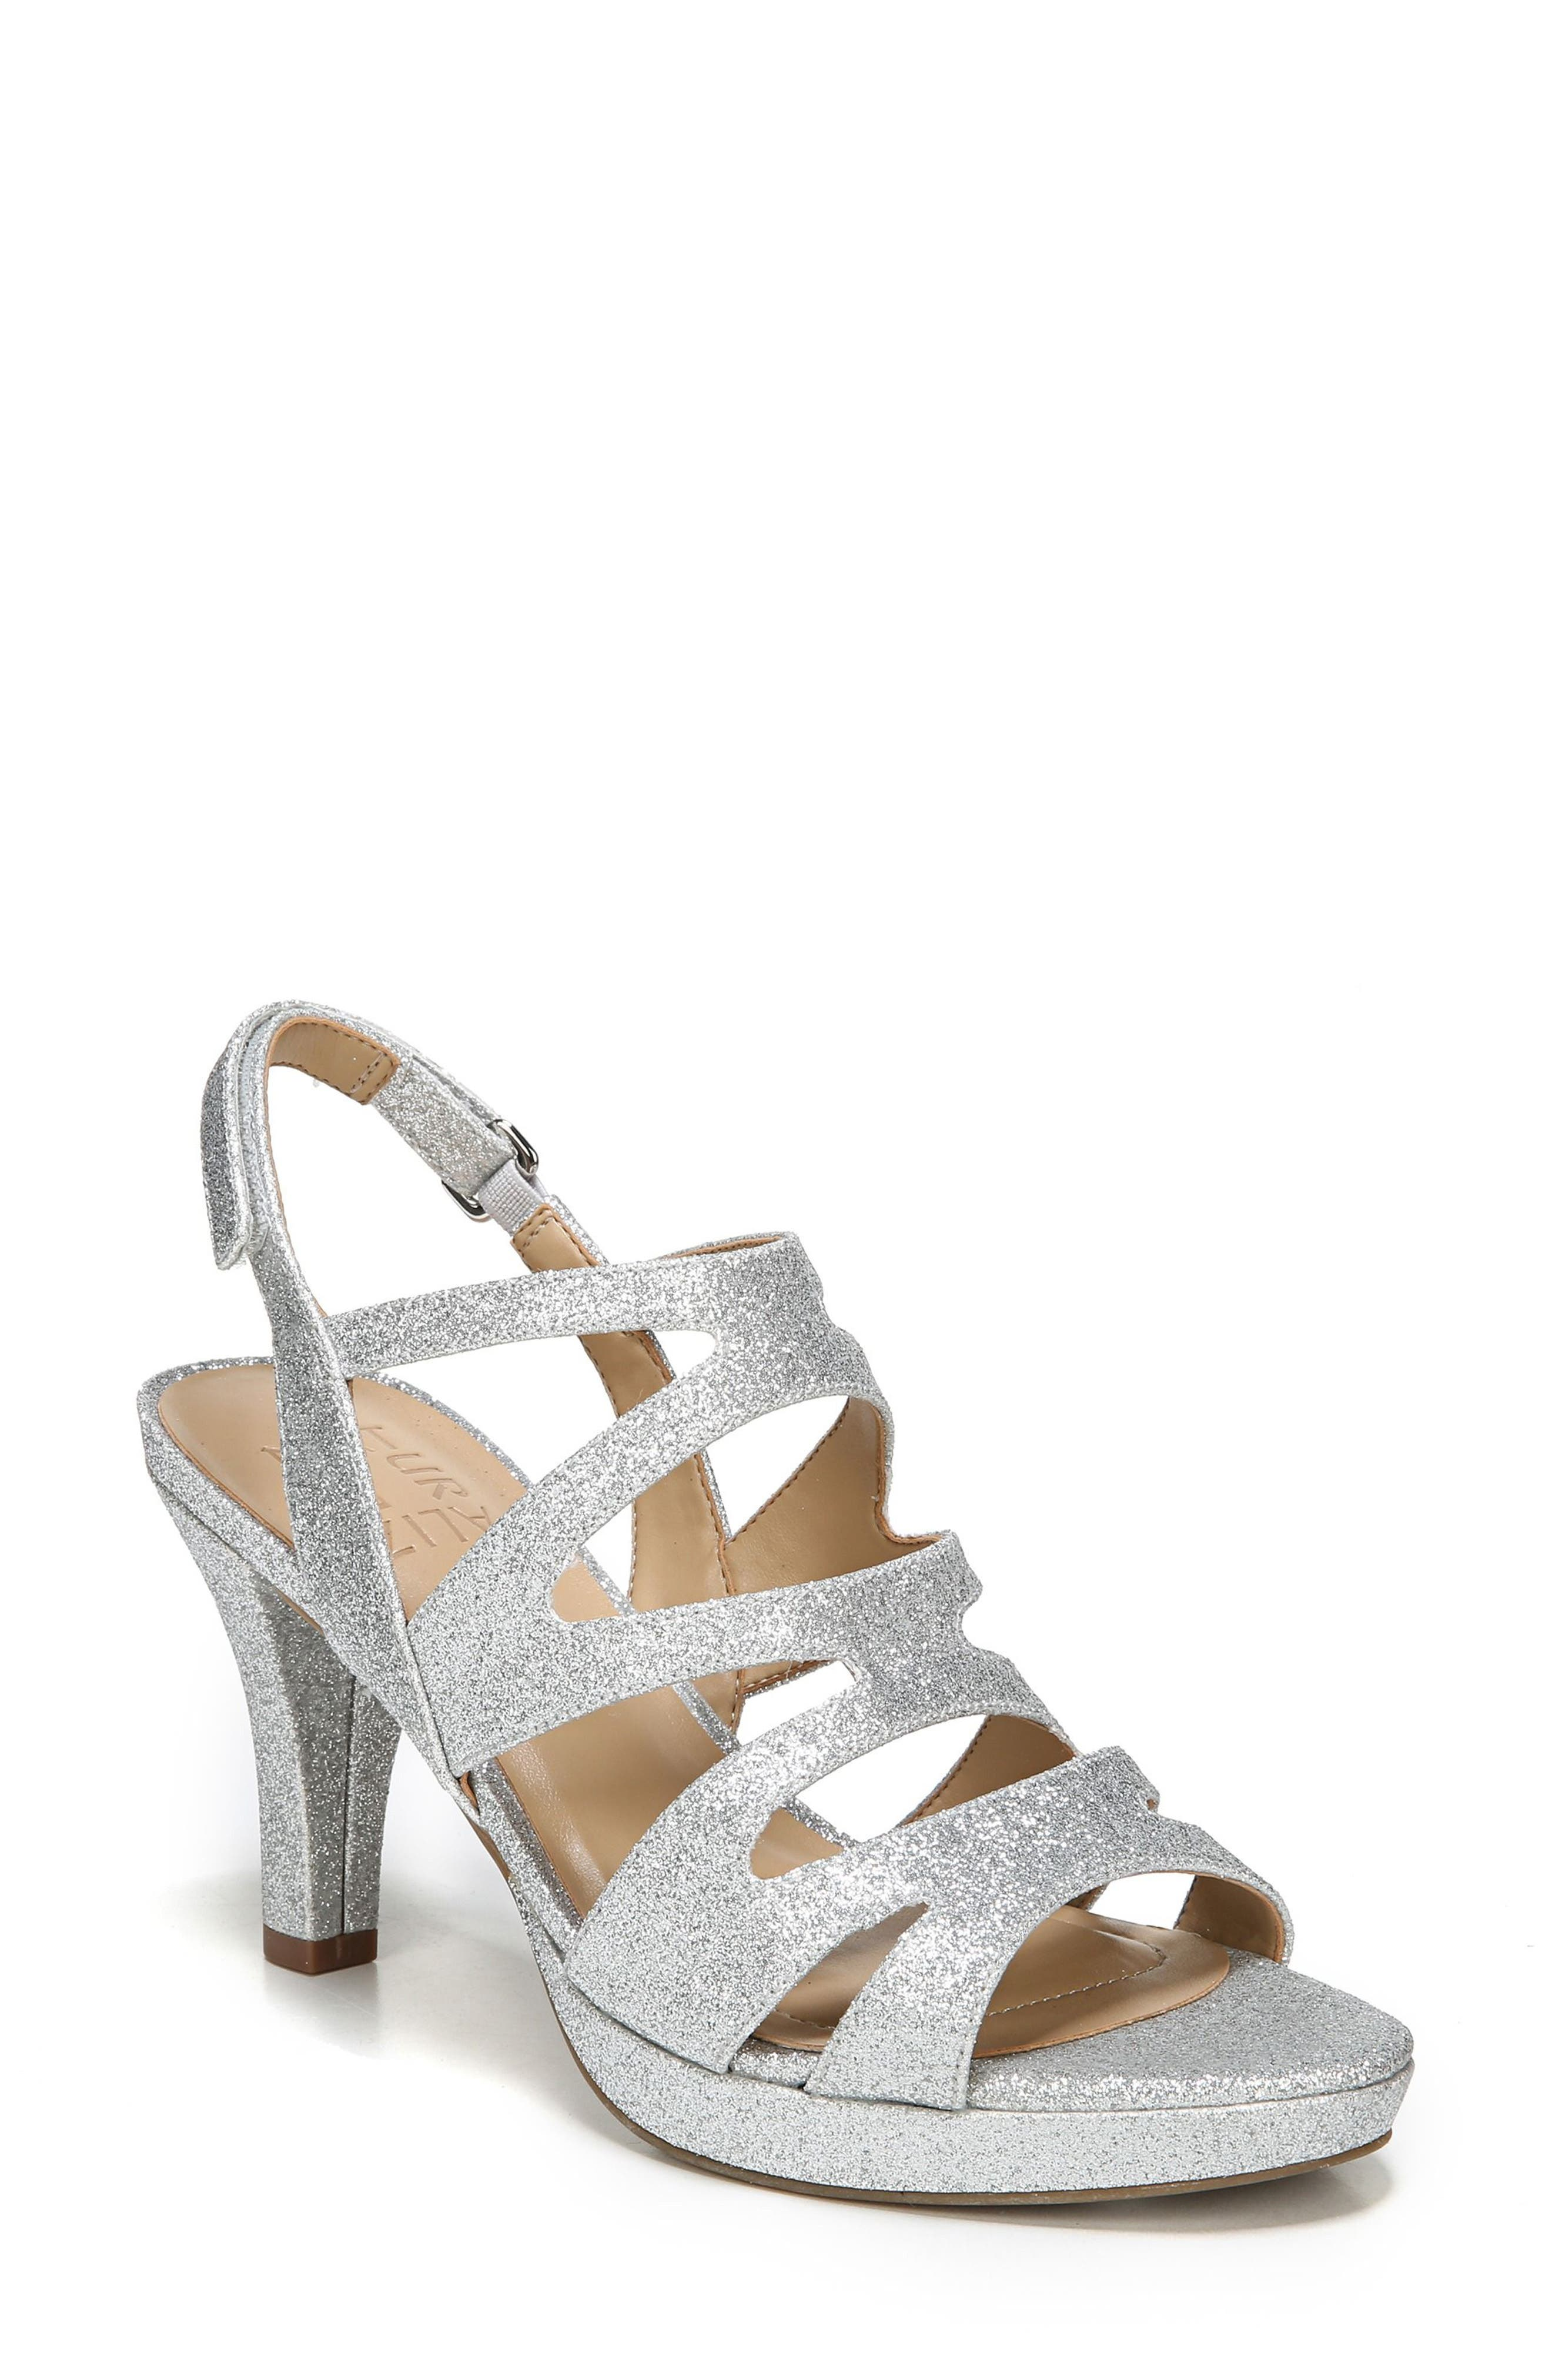 Alternate Image 1 Selected - Naturalizer 'Pressley' Slingback Platform Sandal (Women)